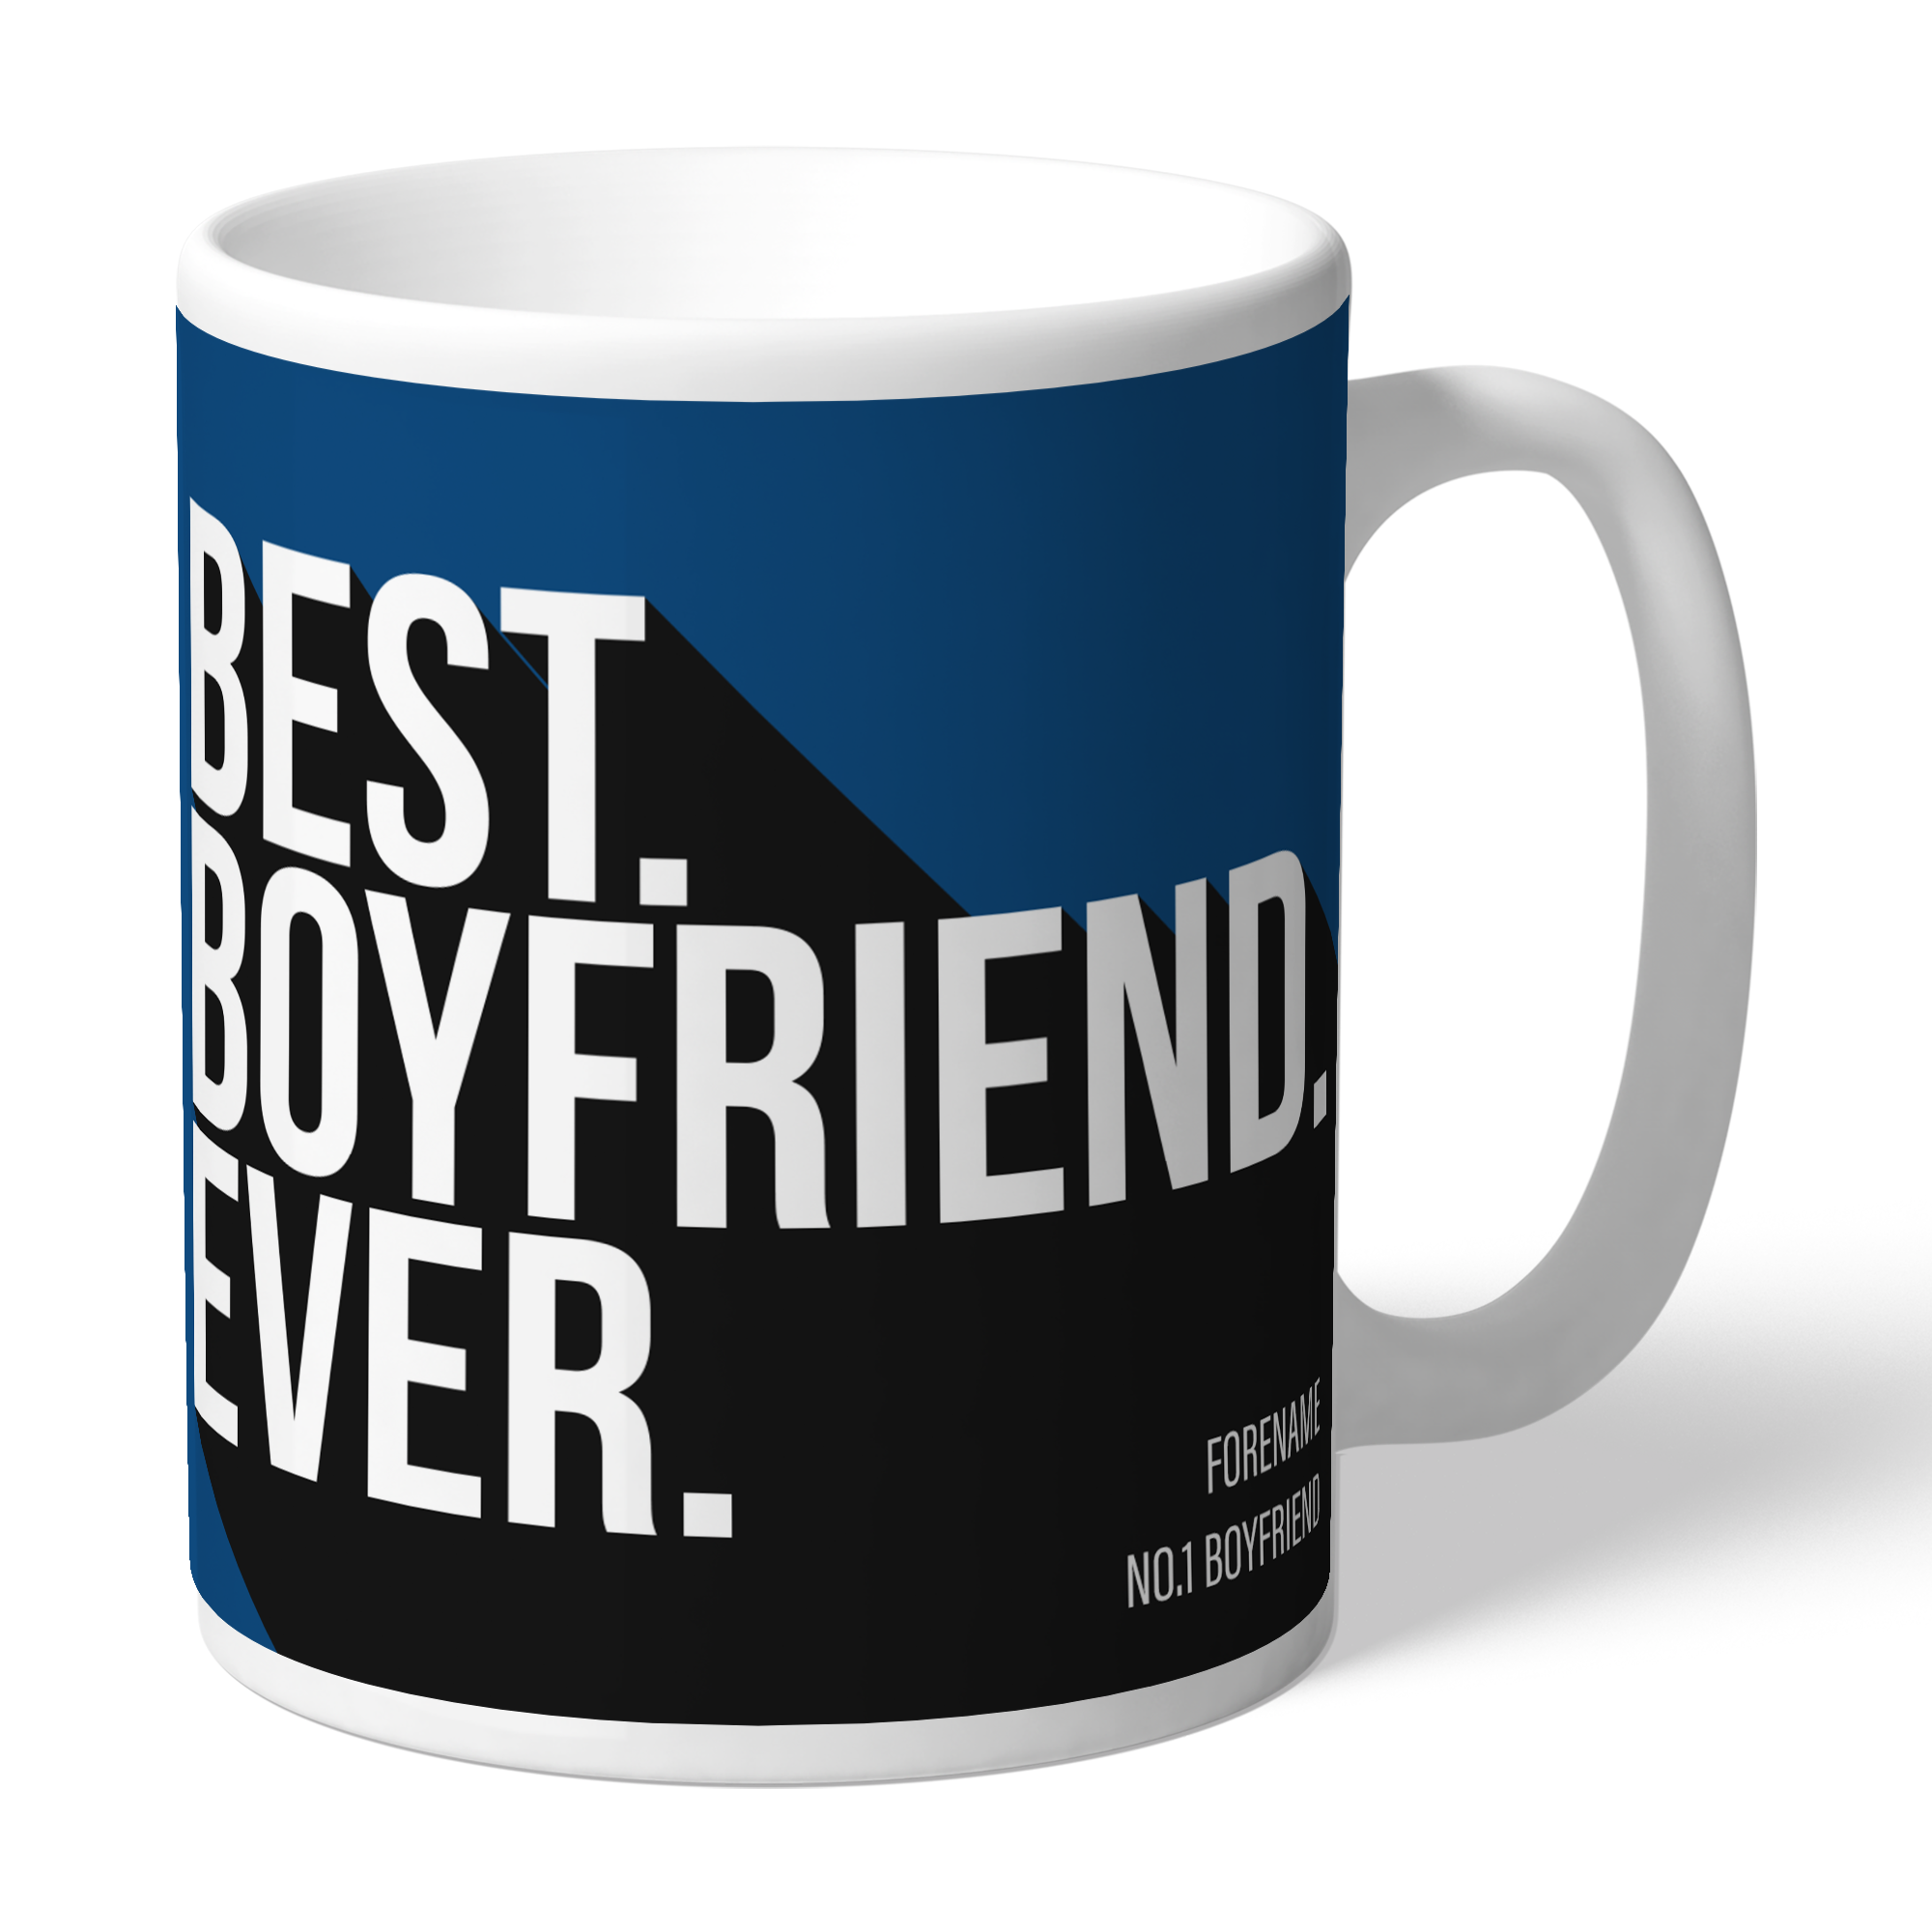 Cardiff City Best Boyfriend Ever Mug